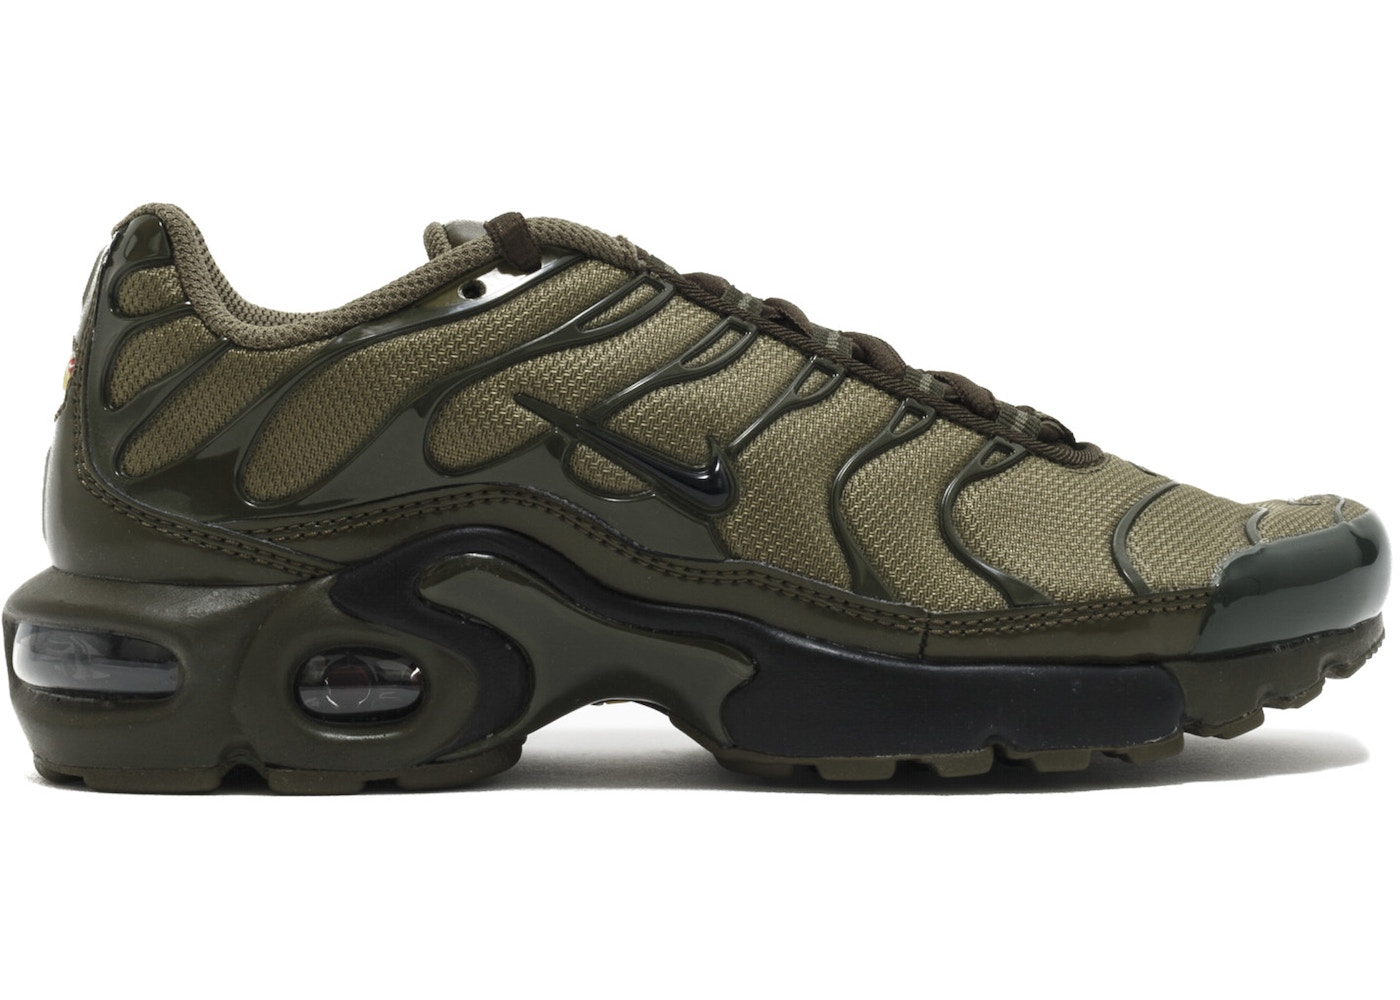 Nike Air Max Other Shoes - Price Premium 040279171